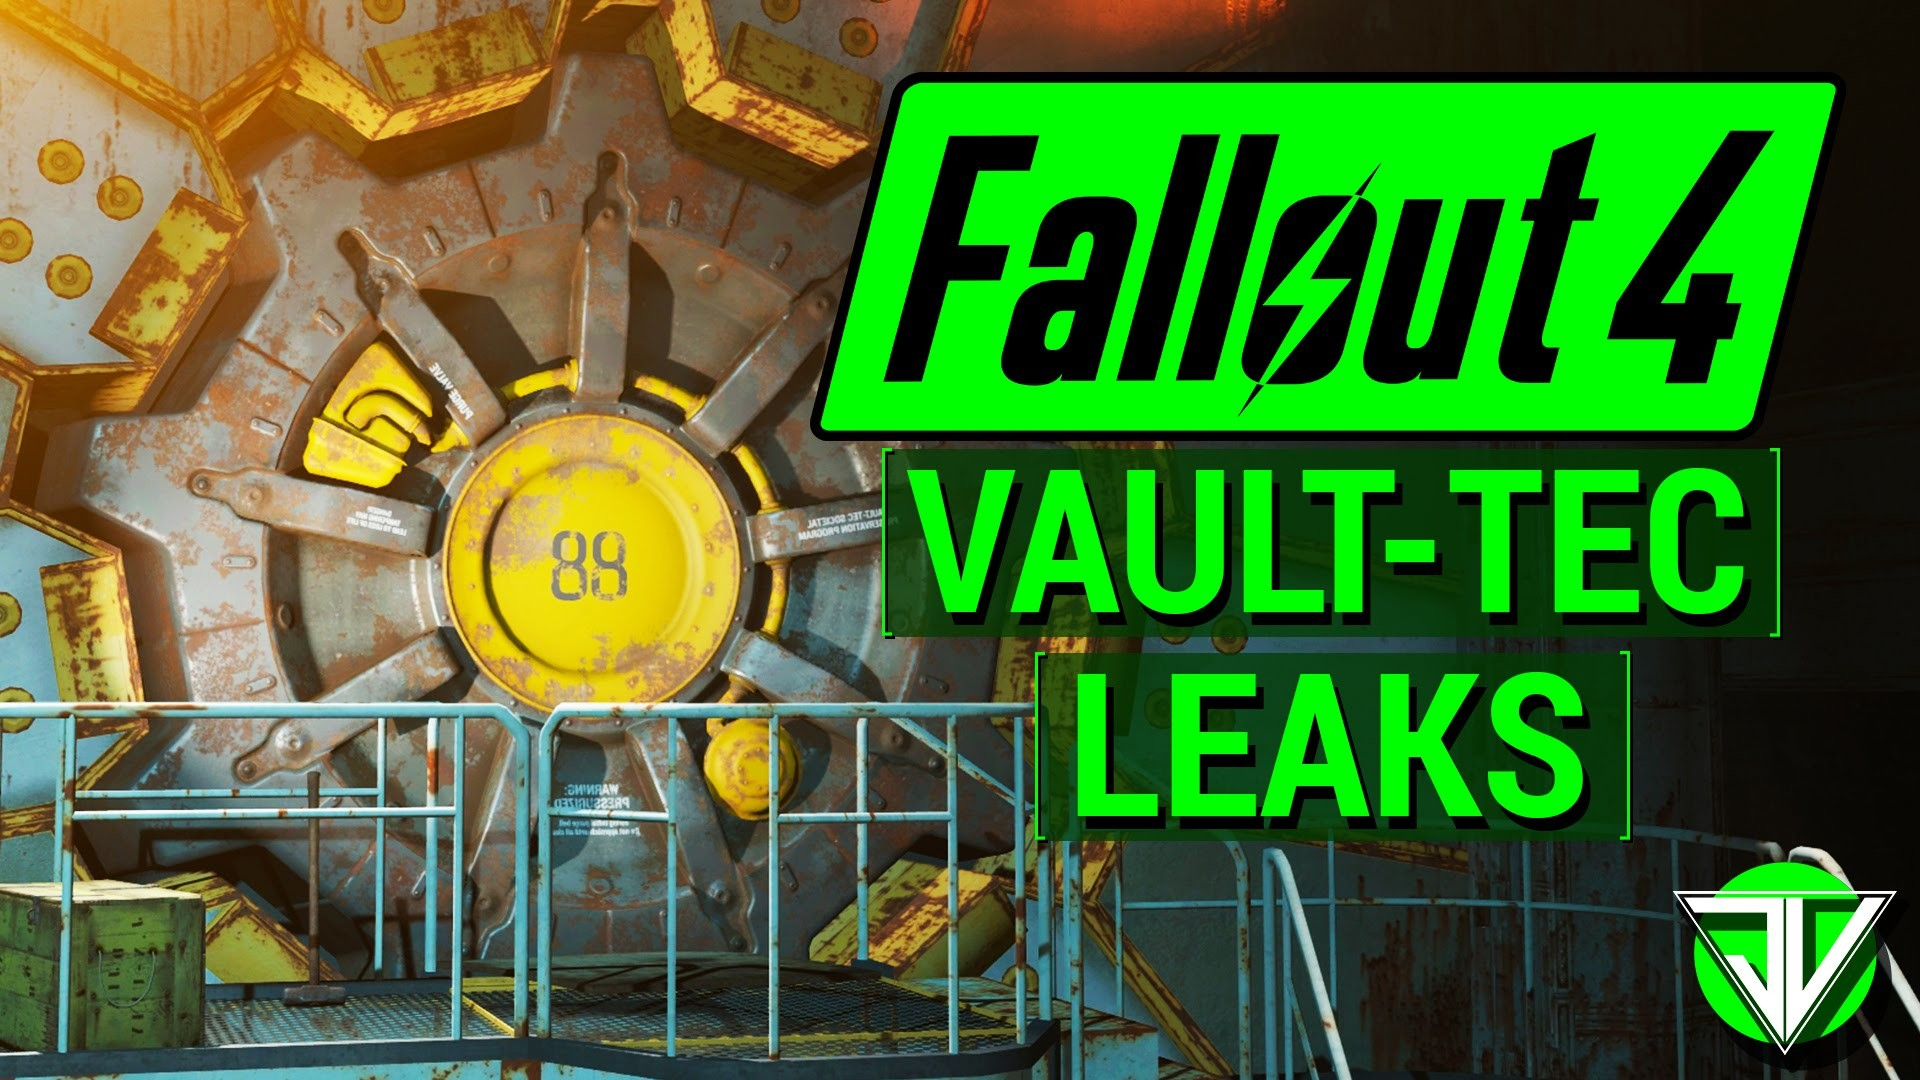 FALLOUT 4: NEW Vault-Tec DLC Details Leaked! (Vault Items, Overseer,  Experiments, and More!) – YouTube